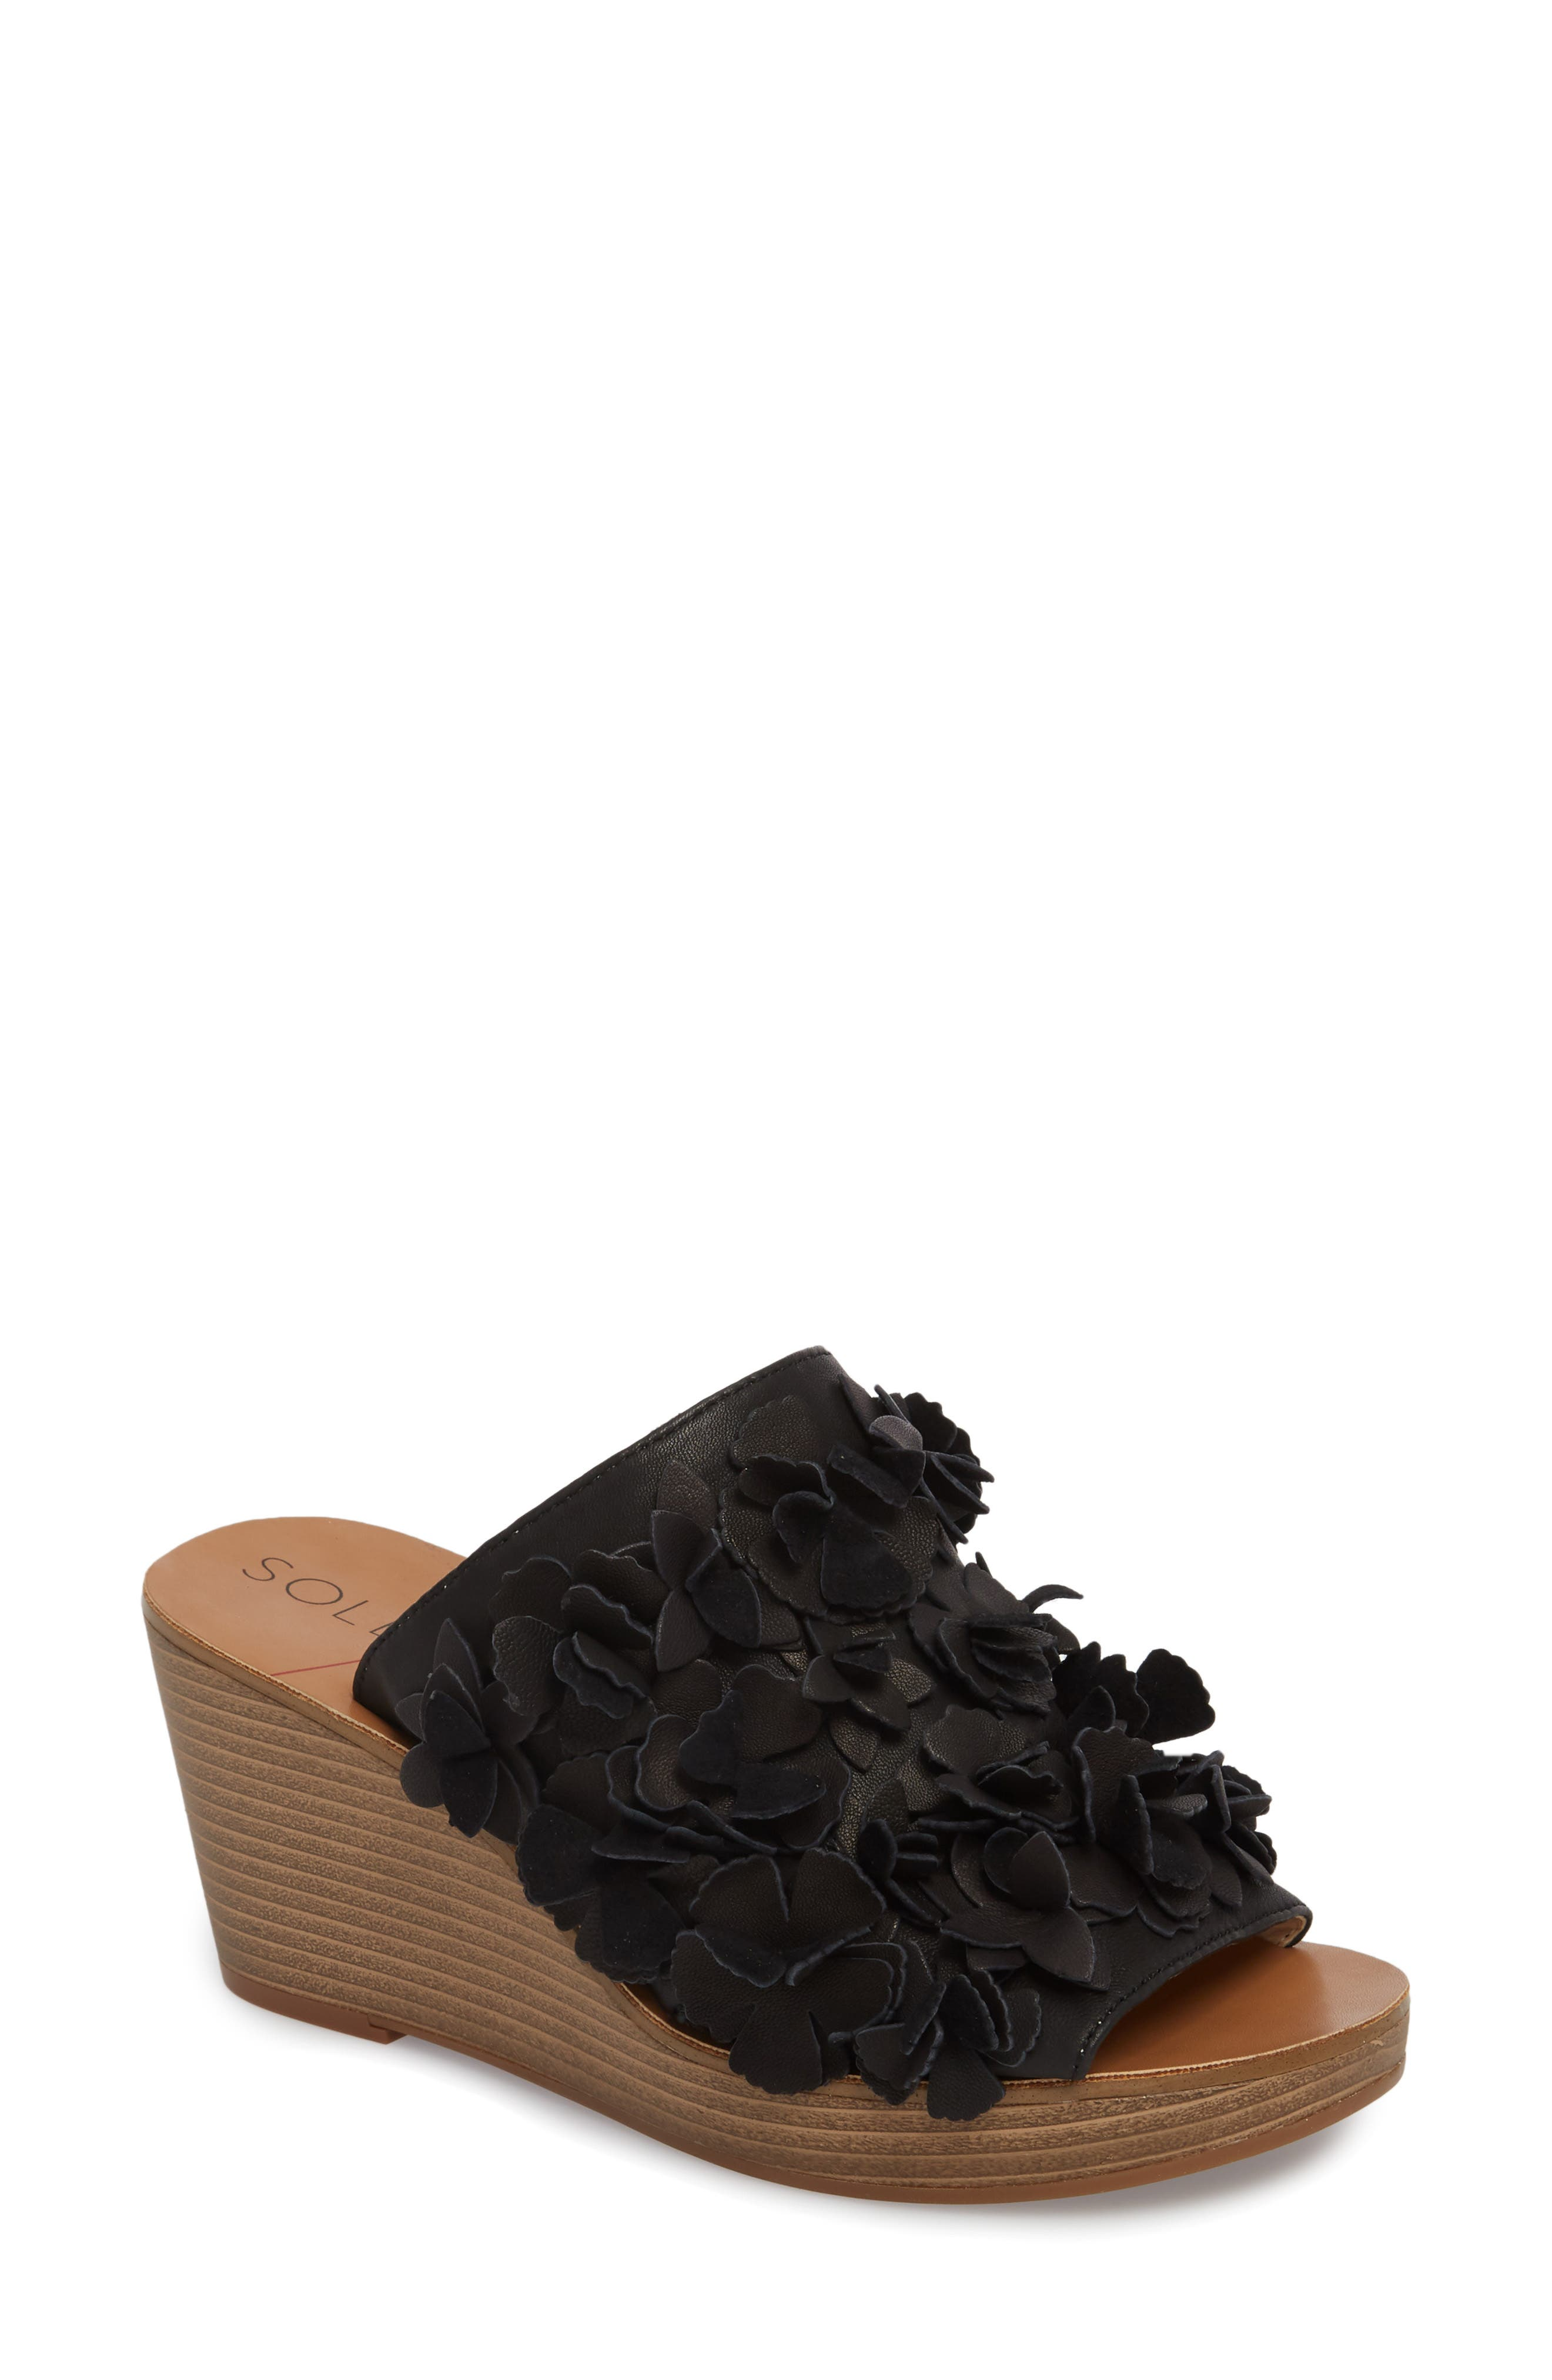 Poppie Wedge Sandal,                         Main,                         color, BLACK